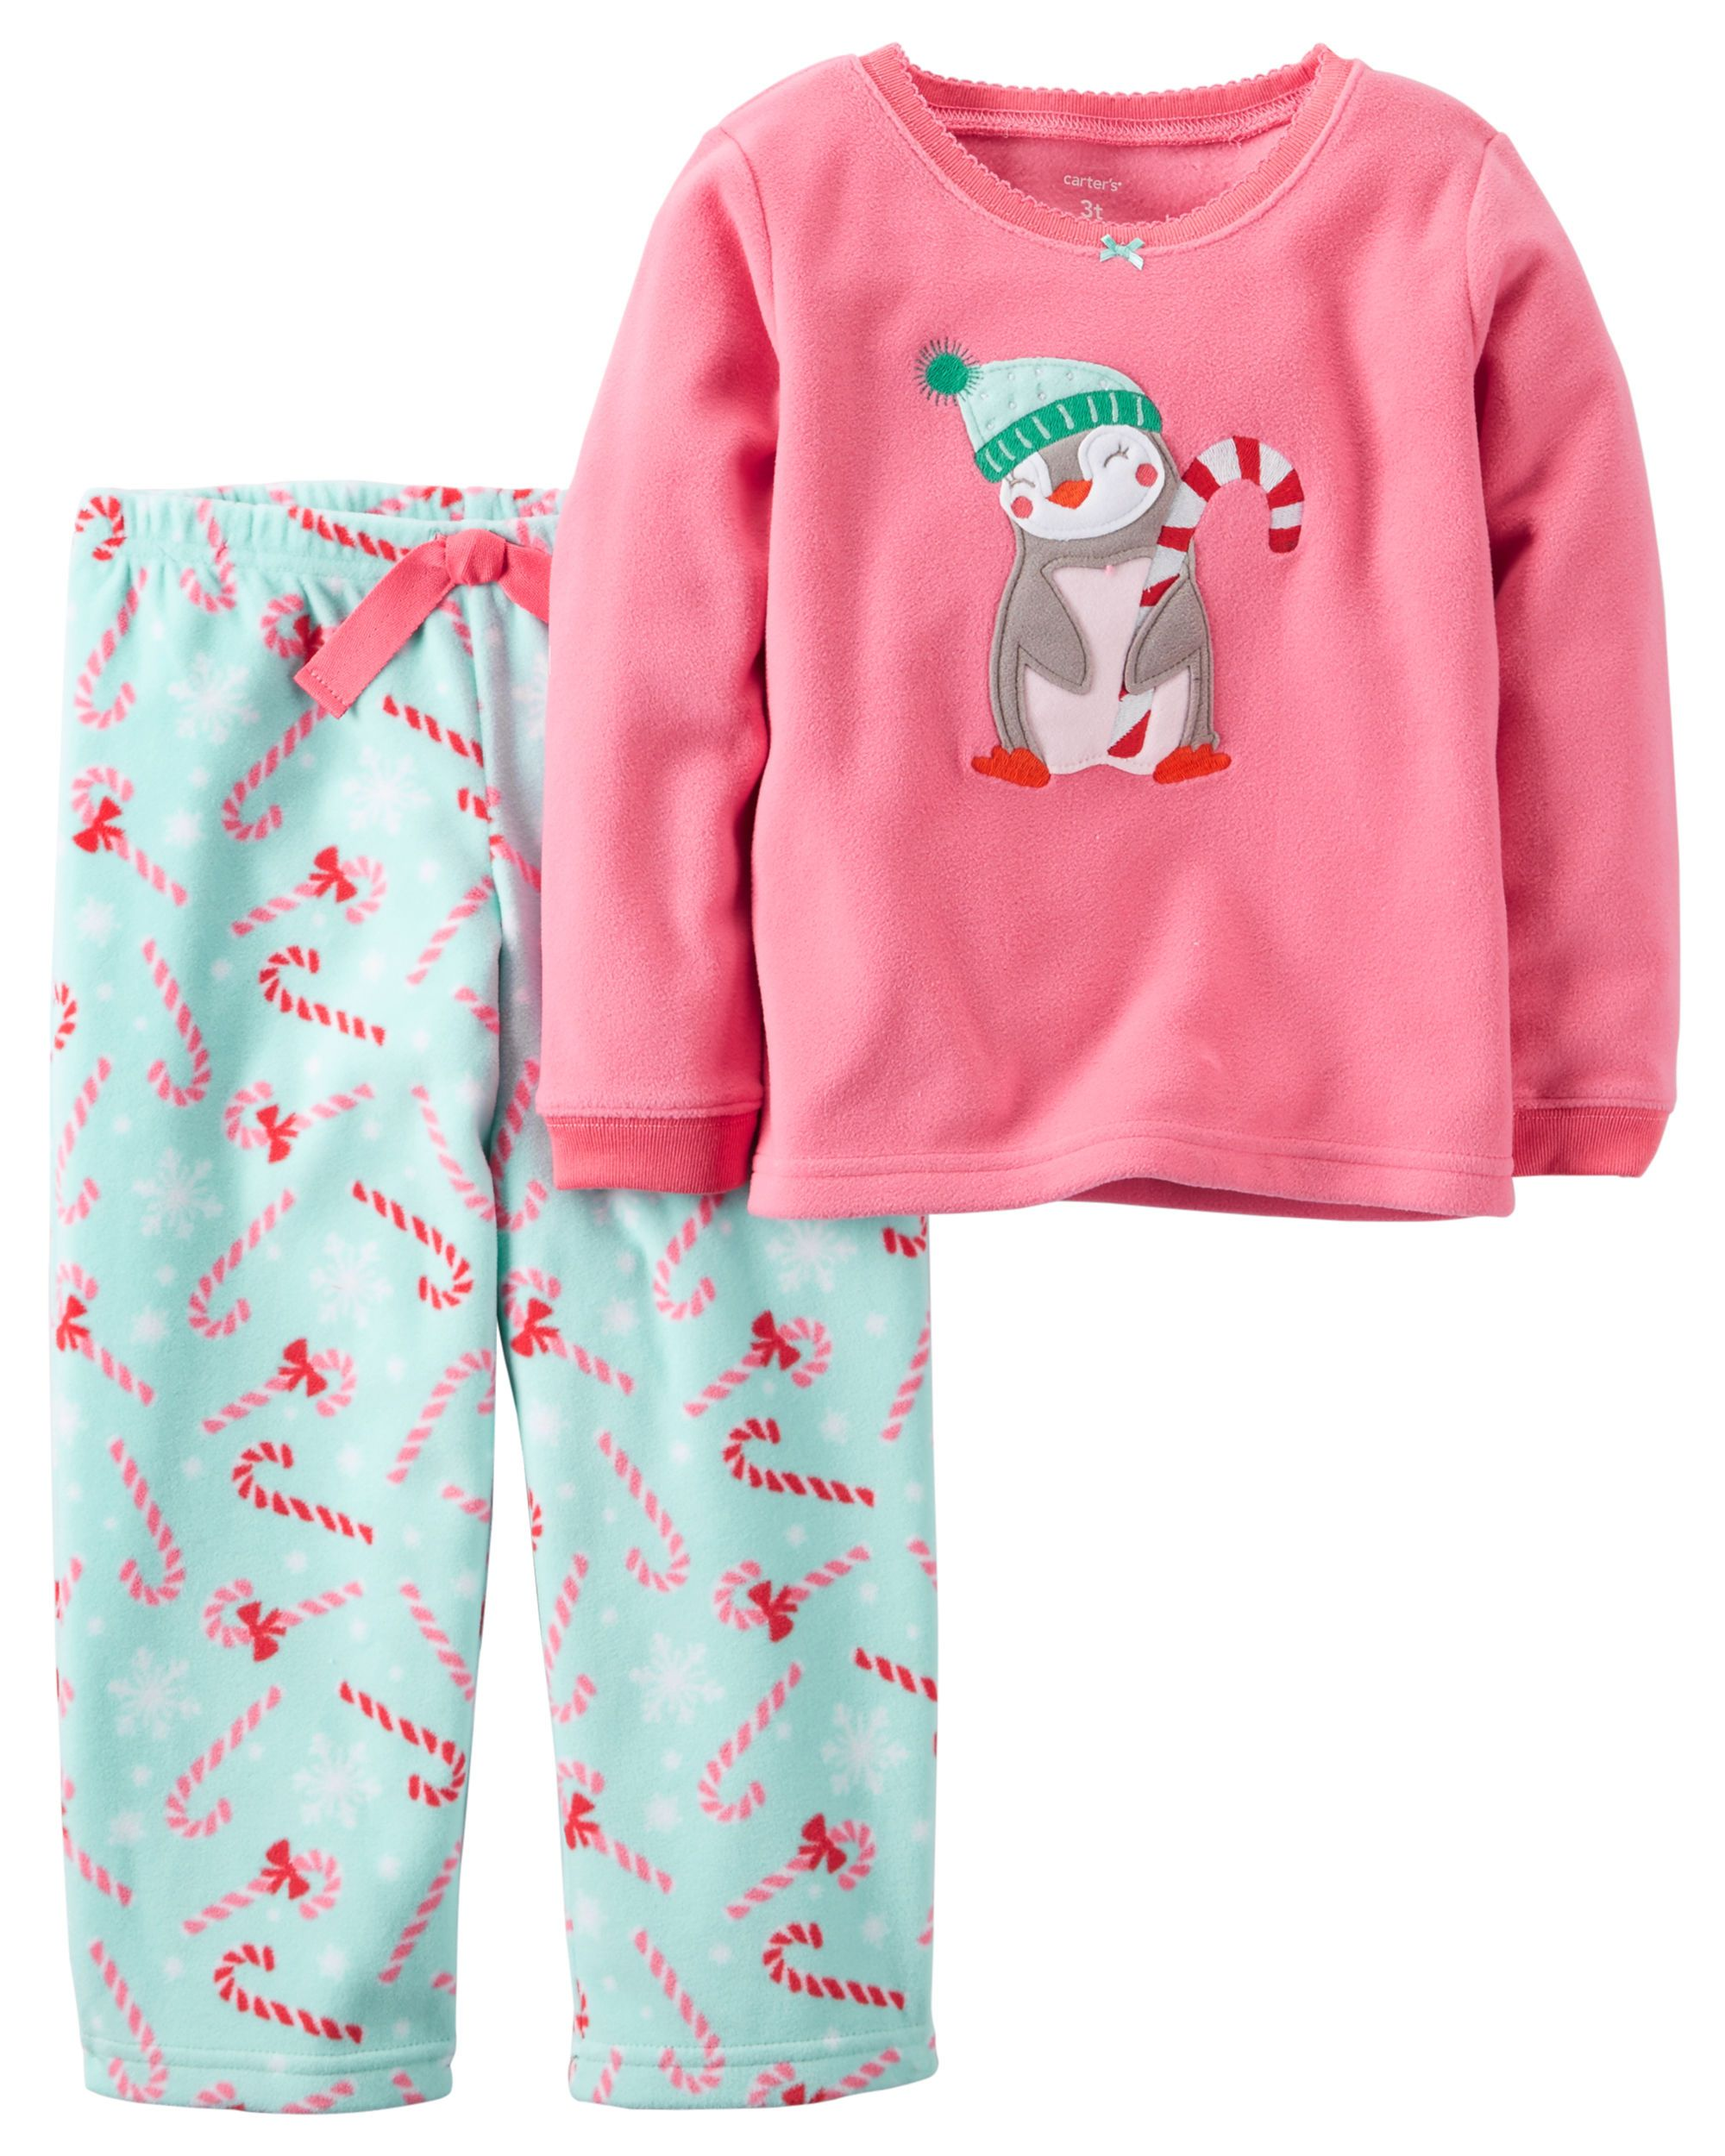 19de591fa Toddler Girl 2-Piece Fleece Christmas PJs from Carters.com. Shop ...